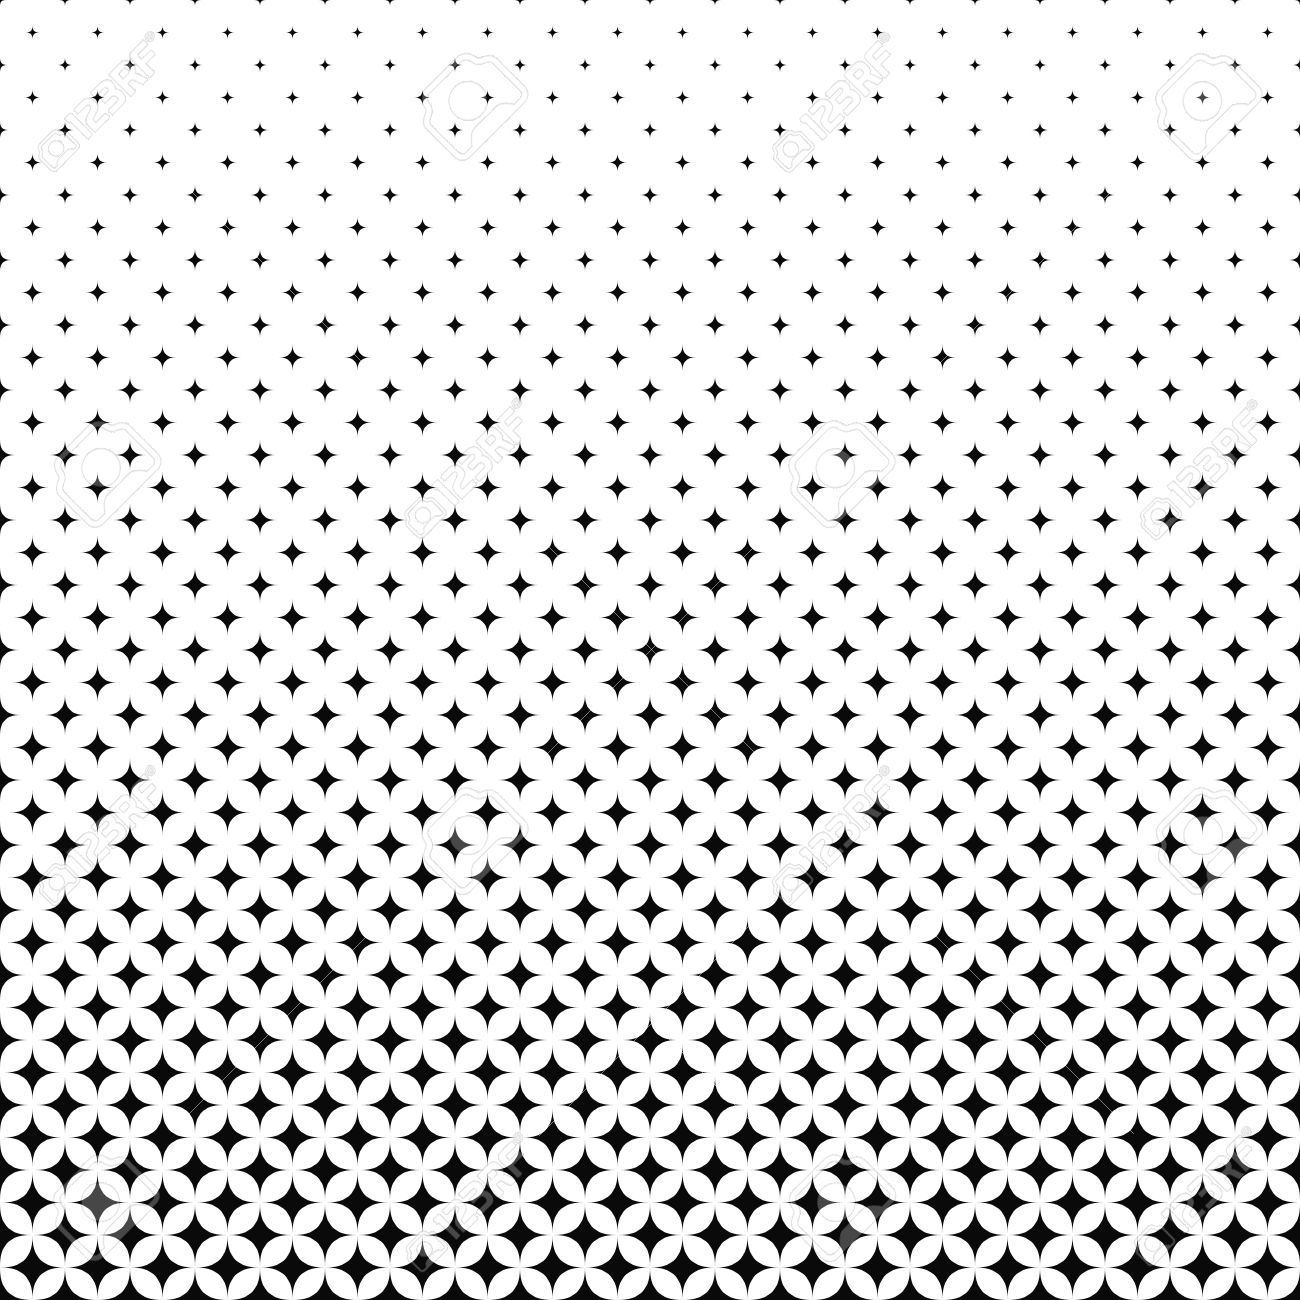 Exceptional Seamless Monochrome Vector Star Pattern Design Background Stock Vector    52803645